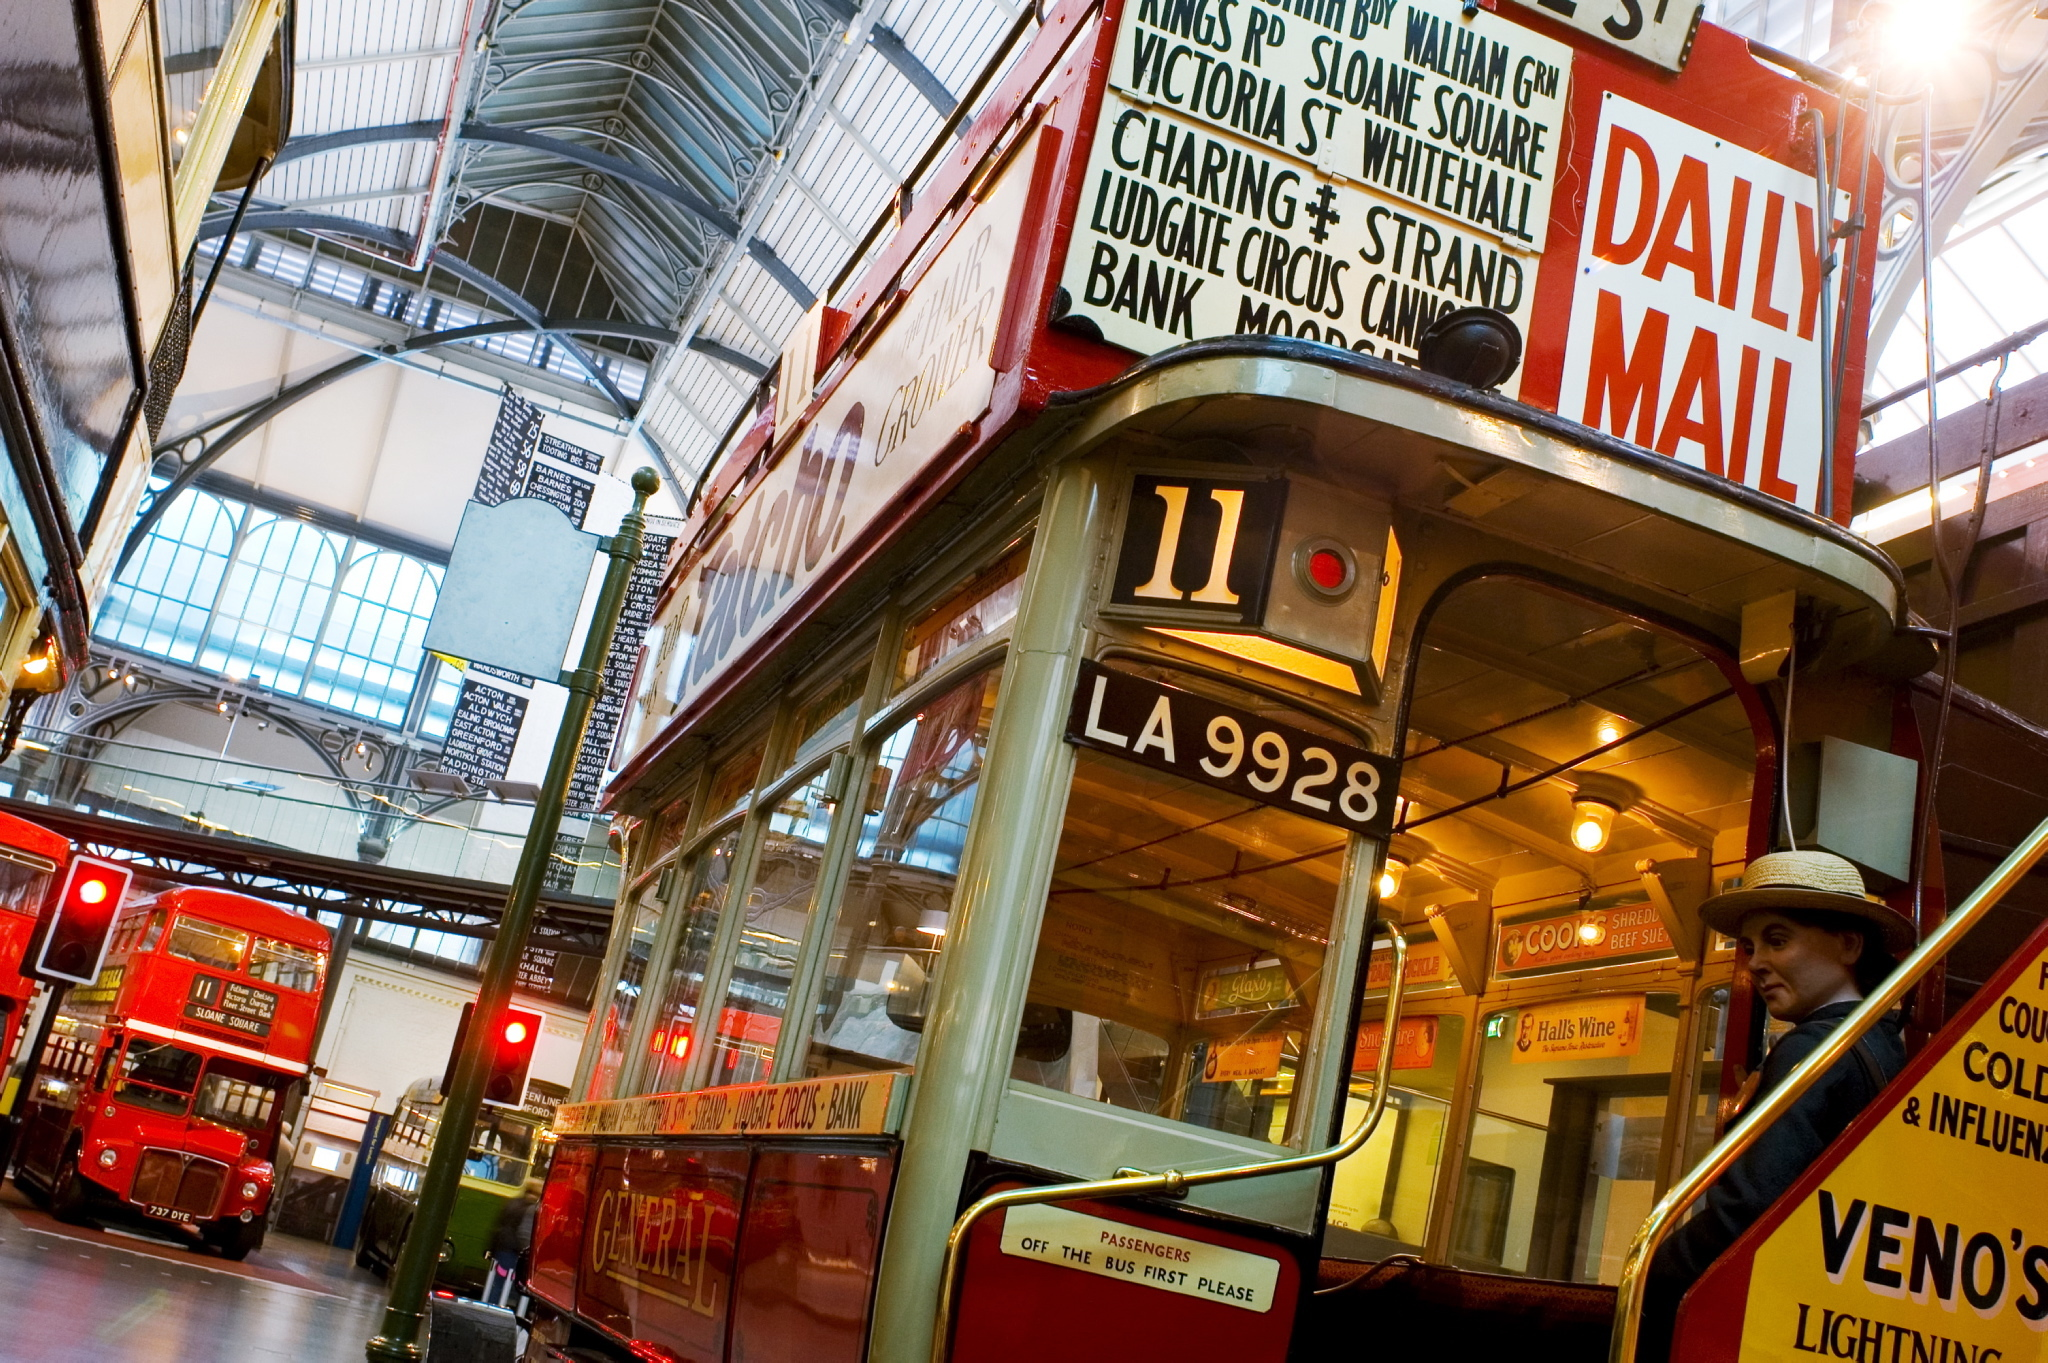 London Transport Museum buses